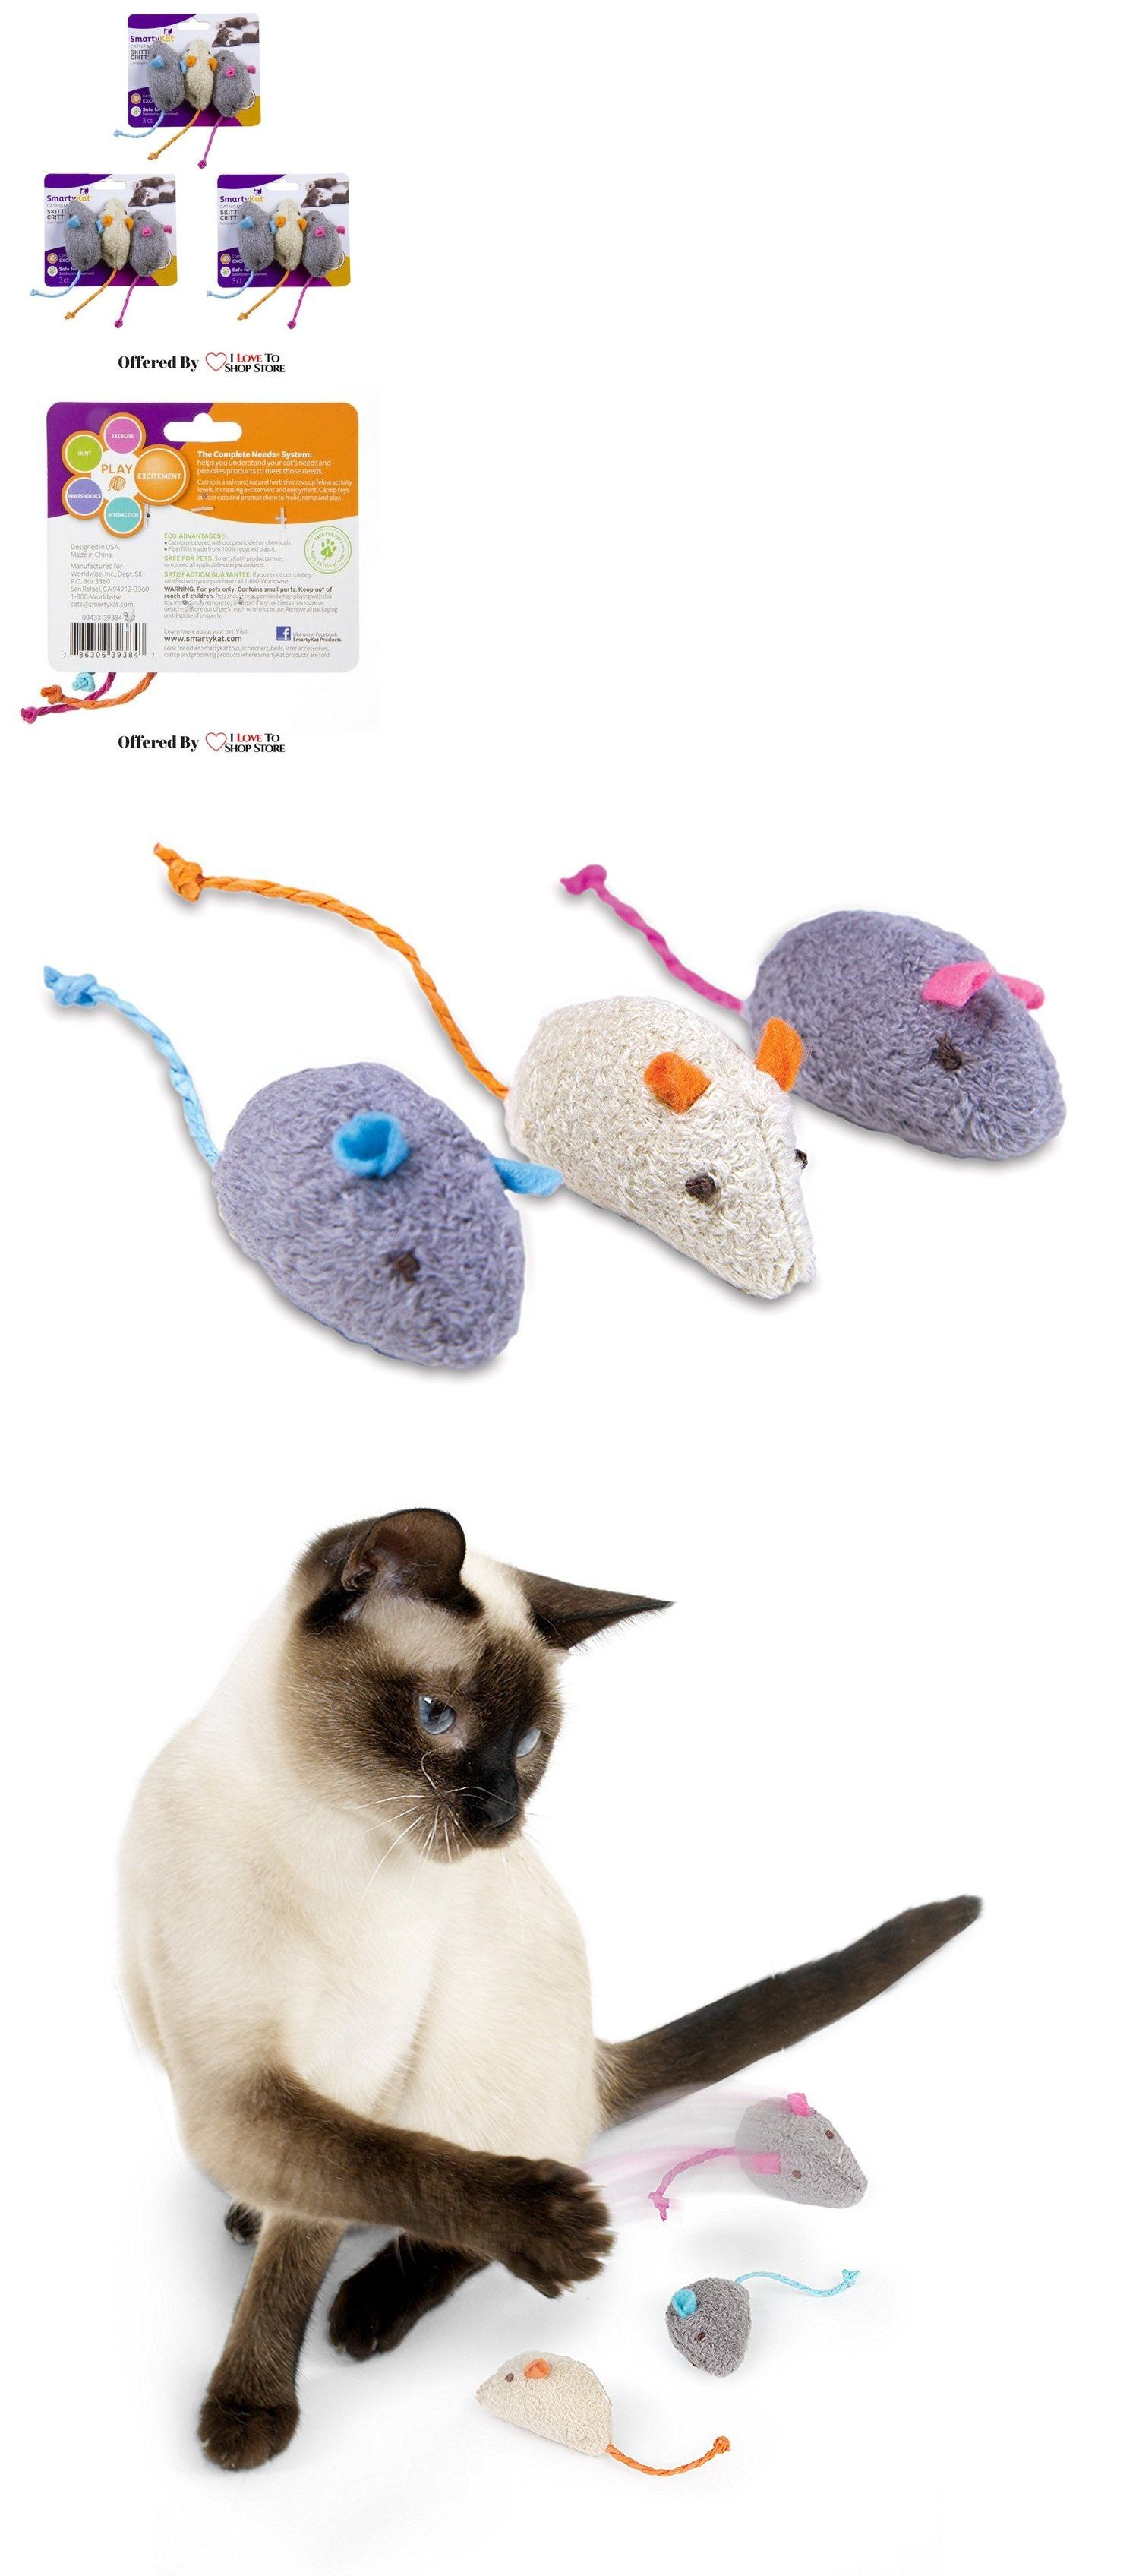 Toys 20741 Smartykat Skitter Critters Cat Toy Catnip Mice 9 Pkg Free Shipping Buy It Now Only 11 49 On Ebay Cat Toys Catnip Cat Toy Toy Sale